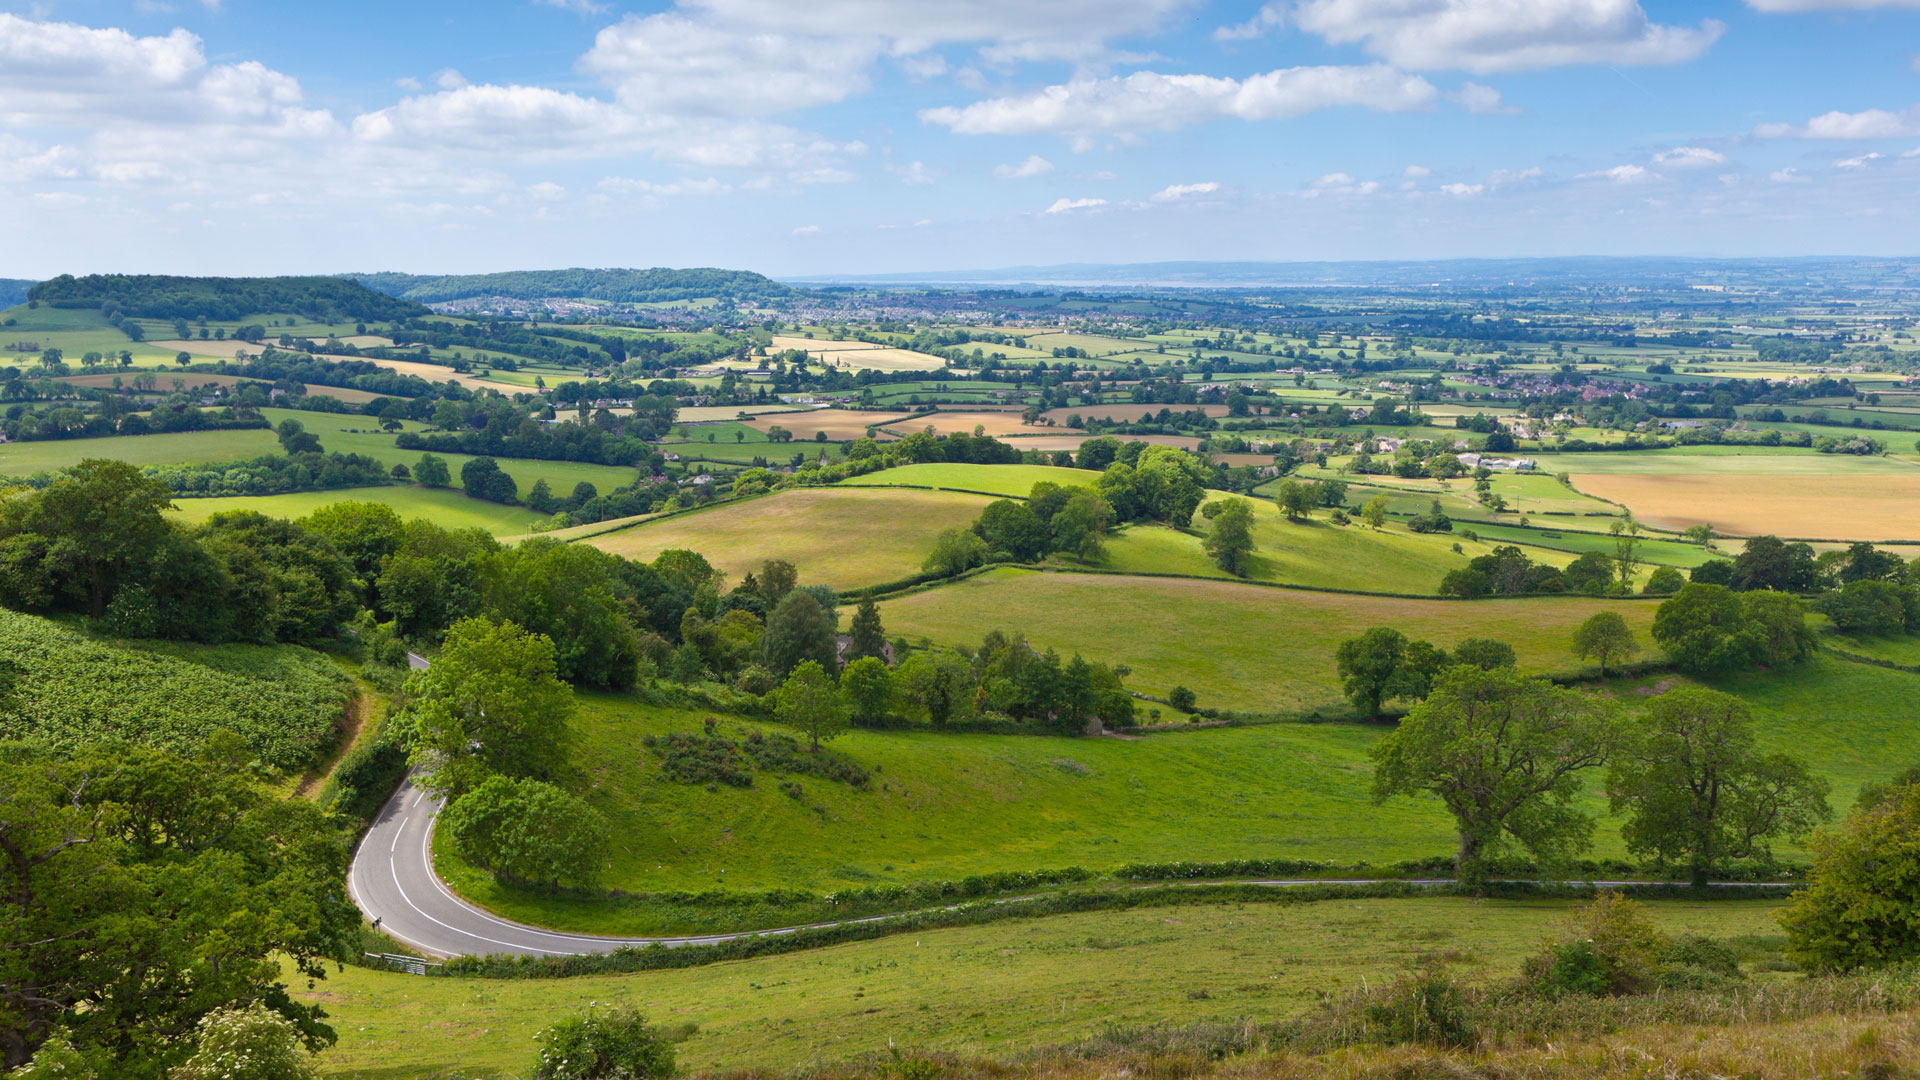 english countryside wallpapers hd   DriverLayer Search Engine 1920x1080